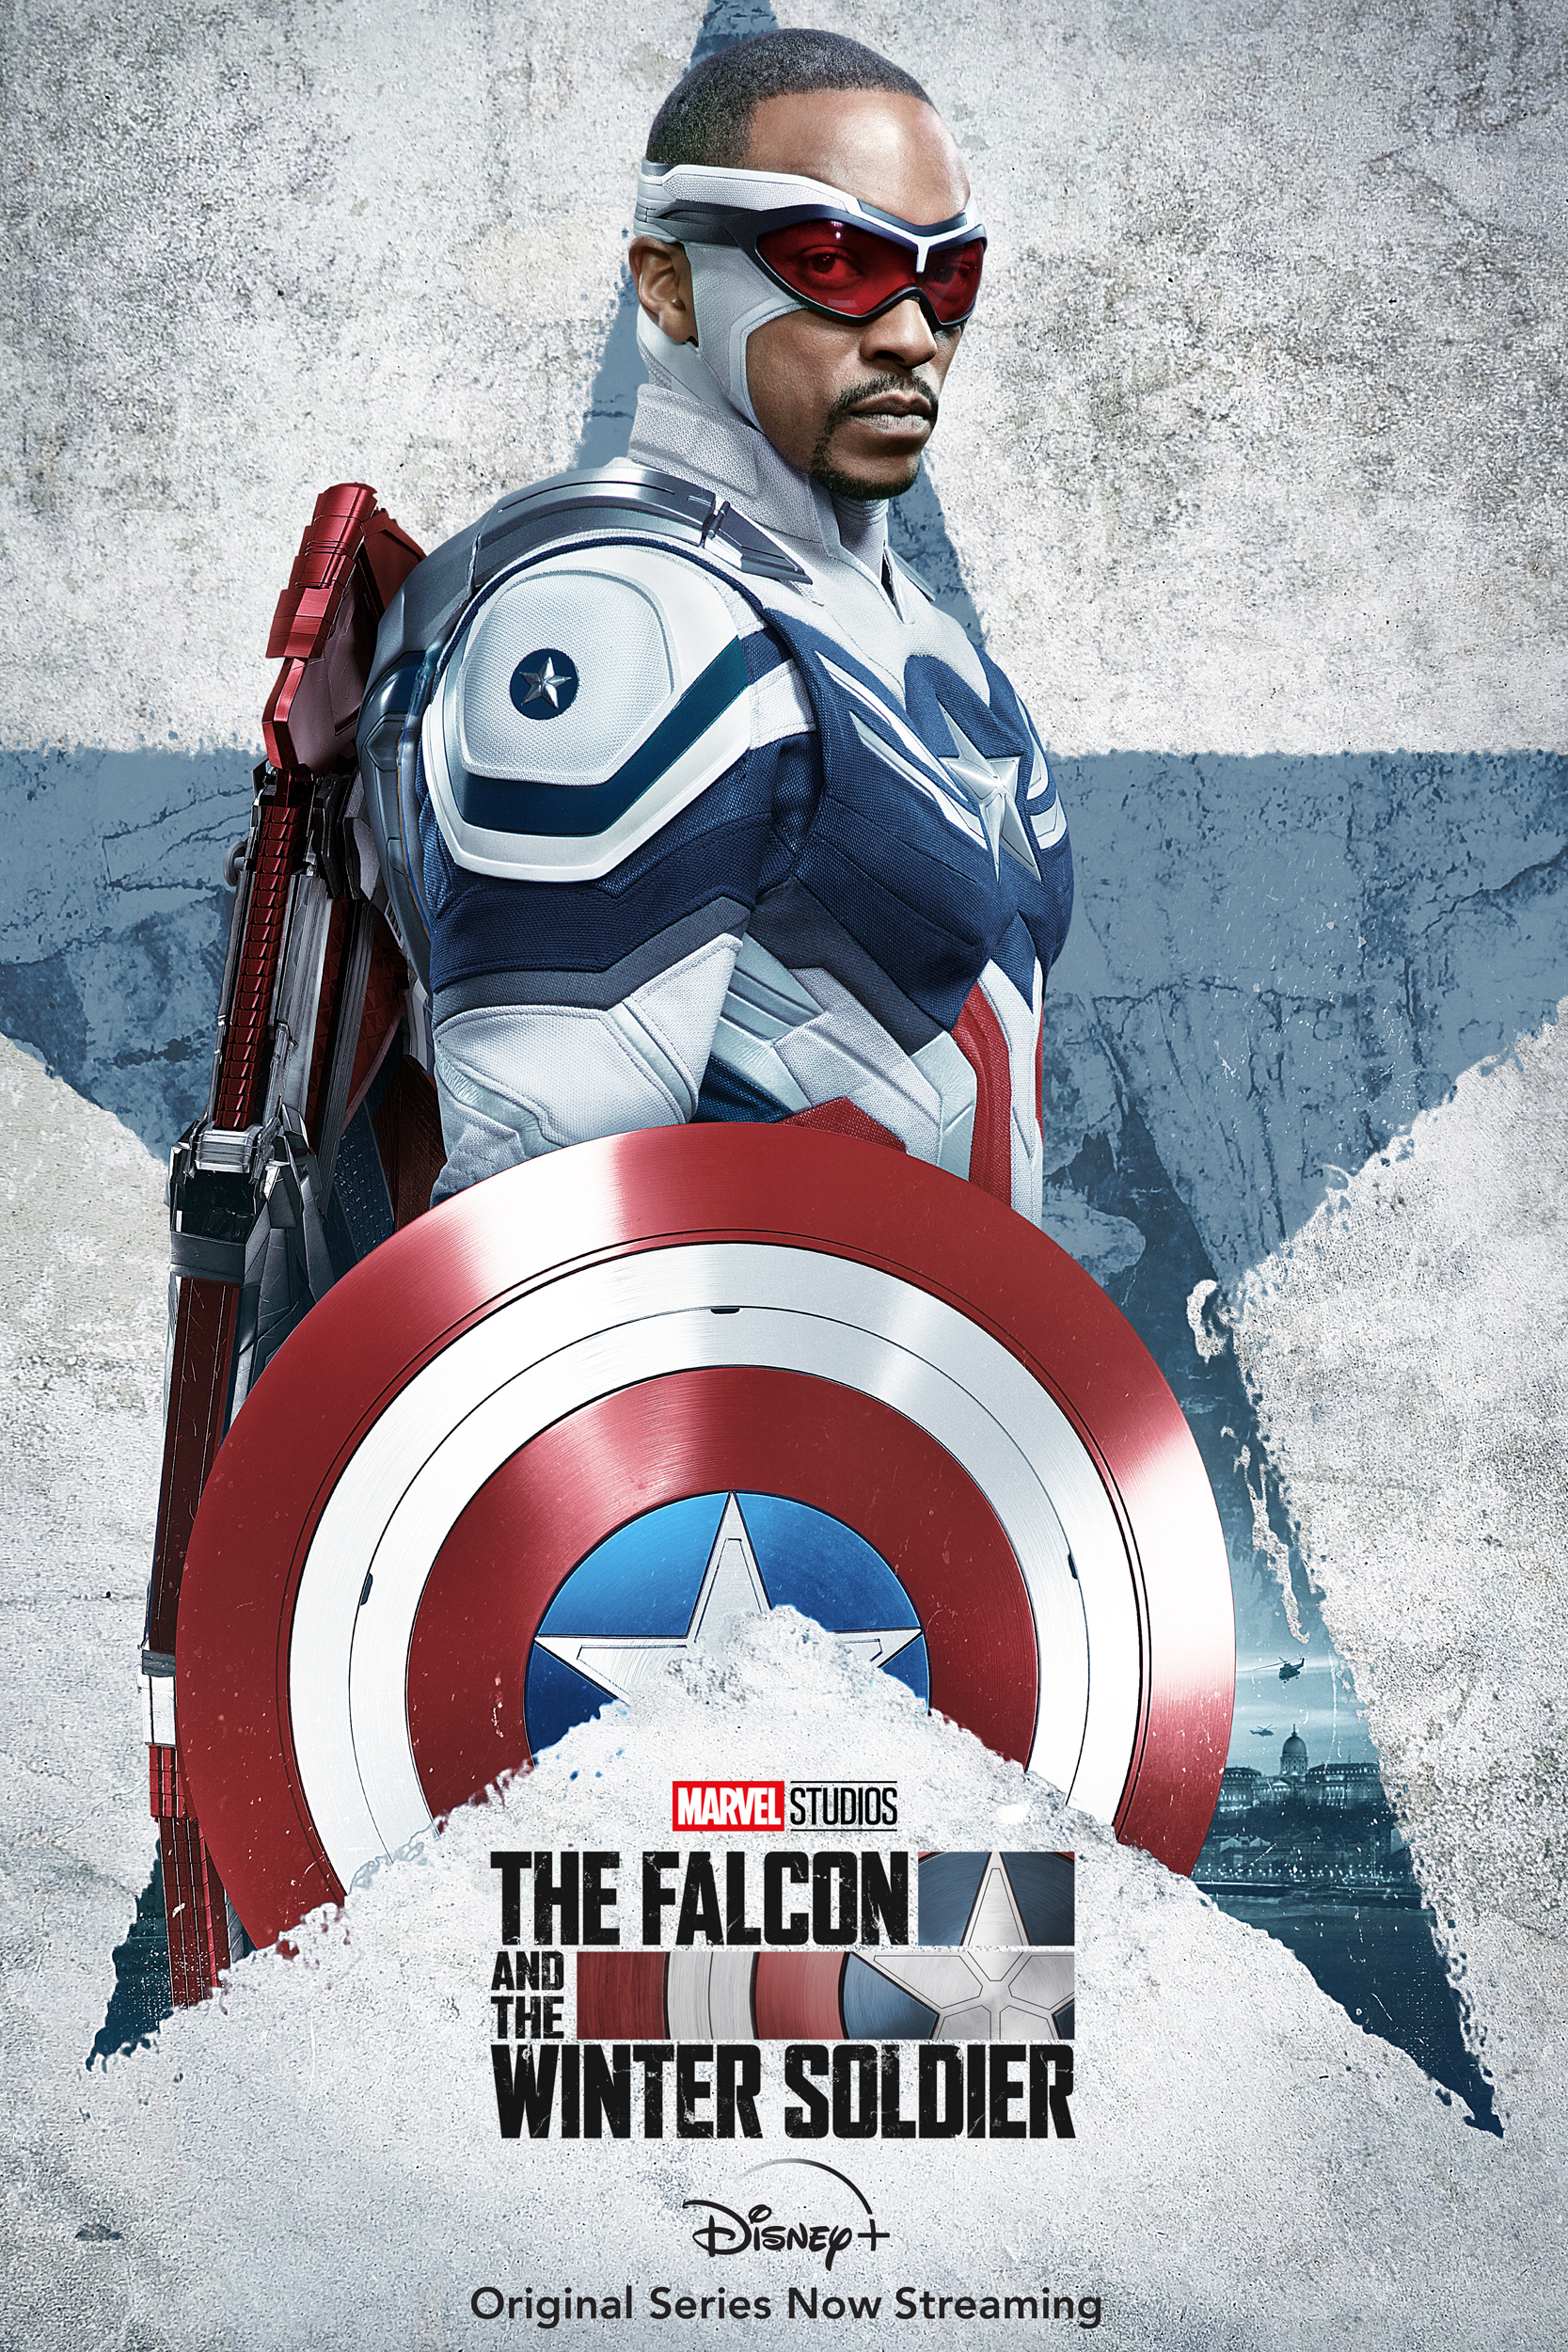 The Falcon and the Winter Soldier Anthony Mackie Poster Captain America 4